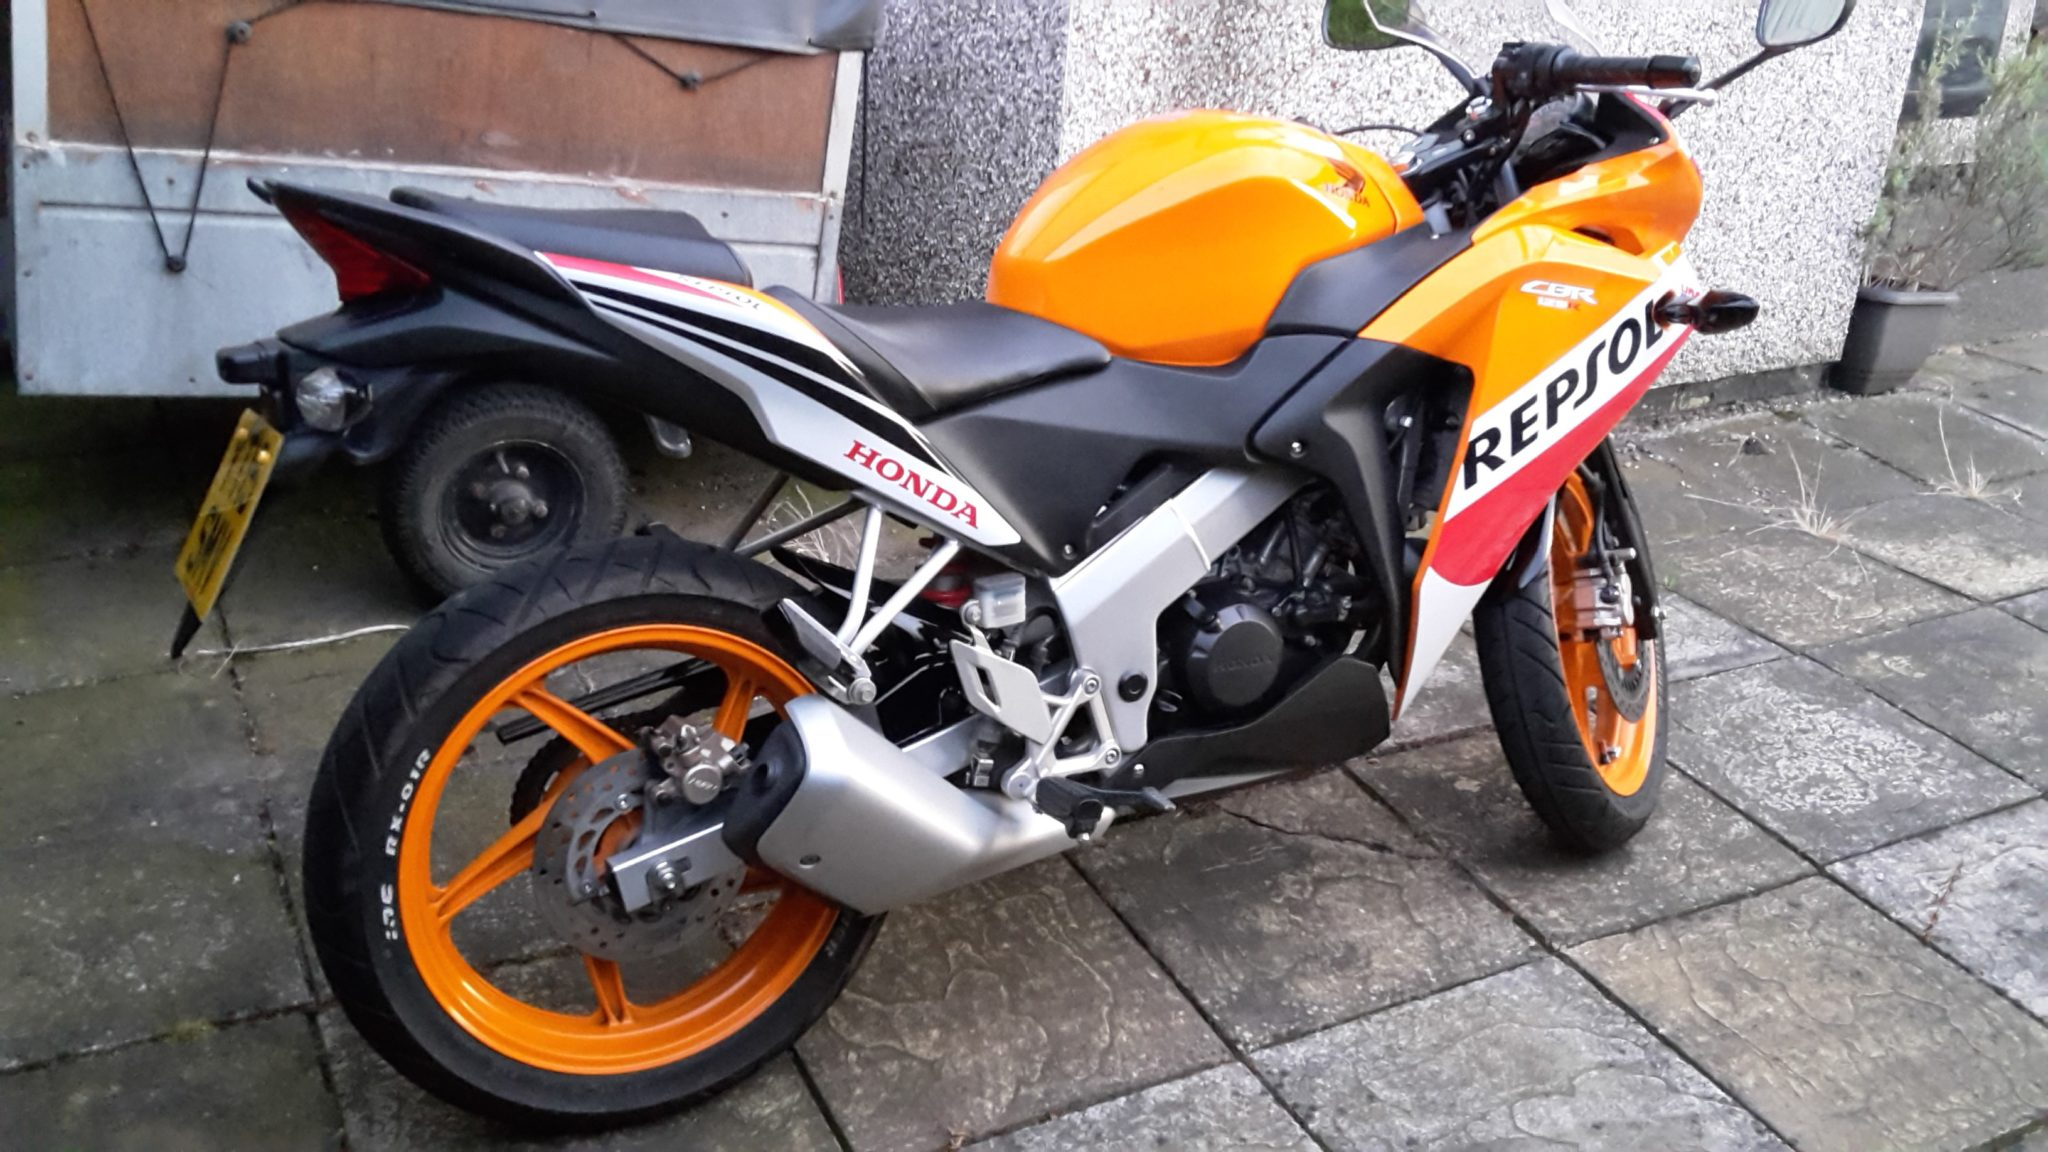 Handy Andy – Honda CBR125R 1